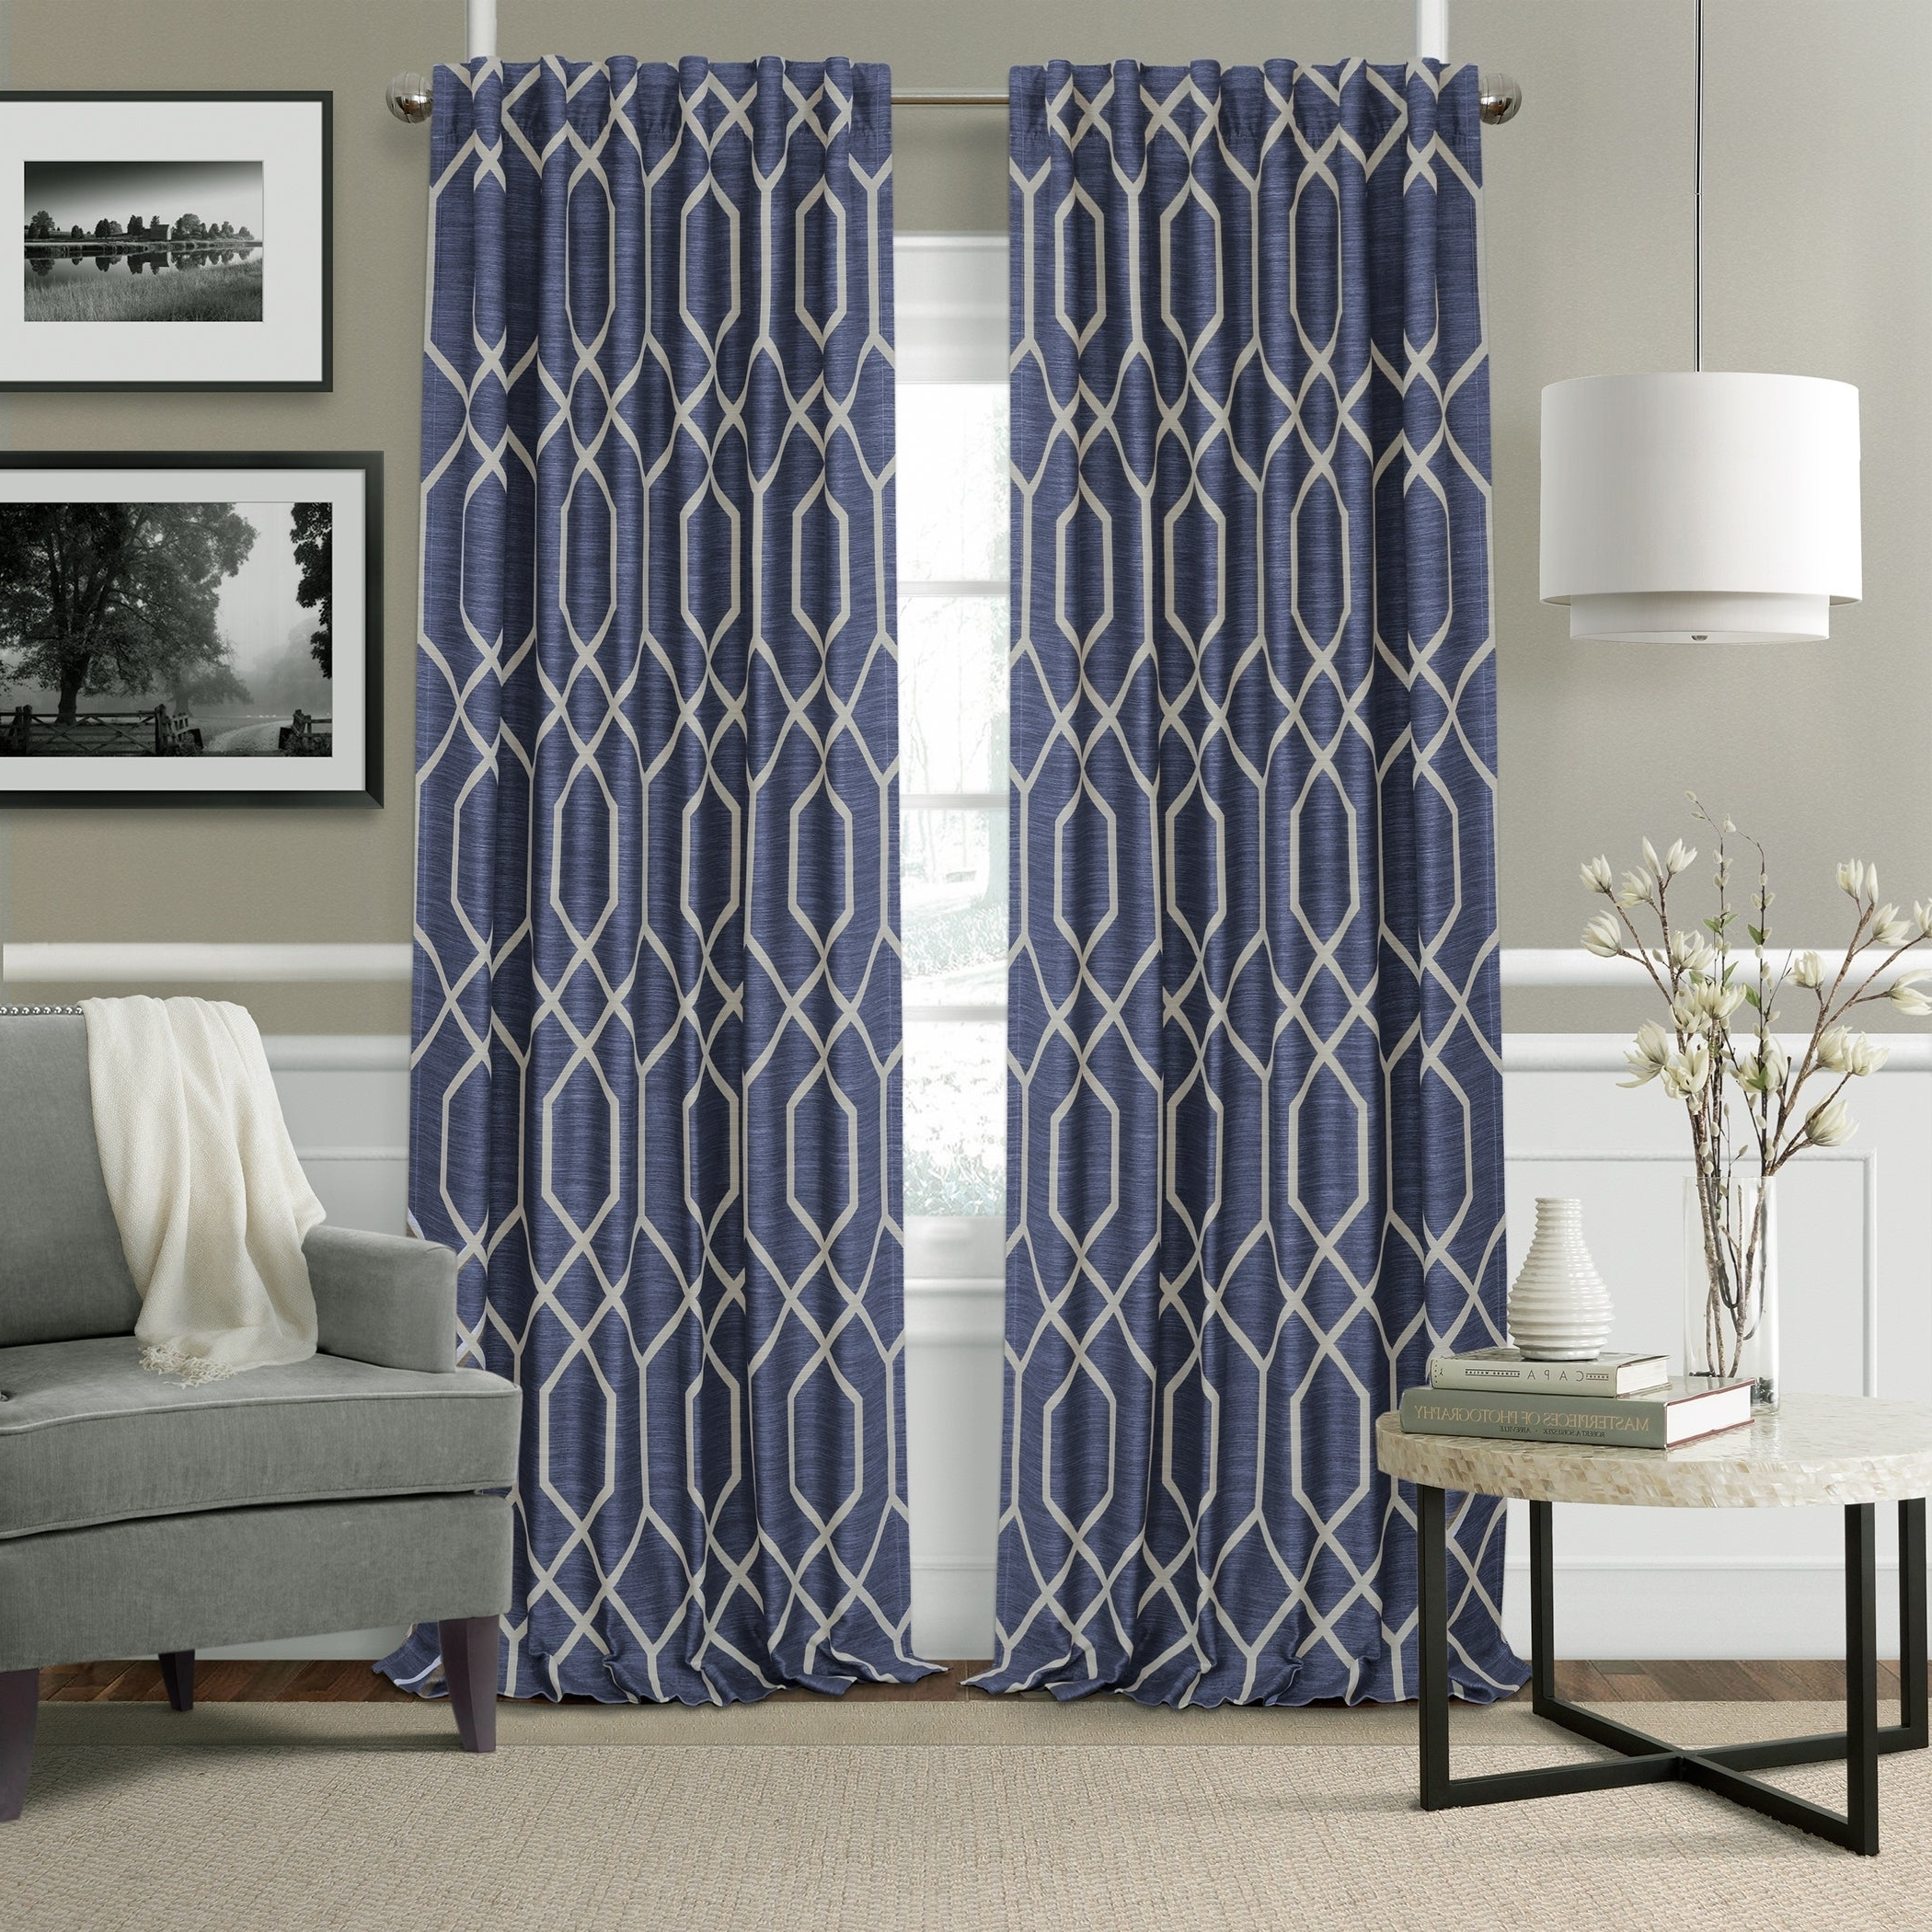 Most Recently Released Elrene Aurora Kids Room Darkening Layered Sheer Curtains Inside Details About Elrene Devin Geometric Room Darkening Curtains (Gallery 8 of 20)